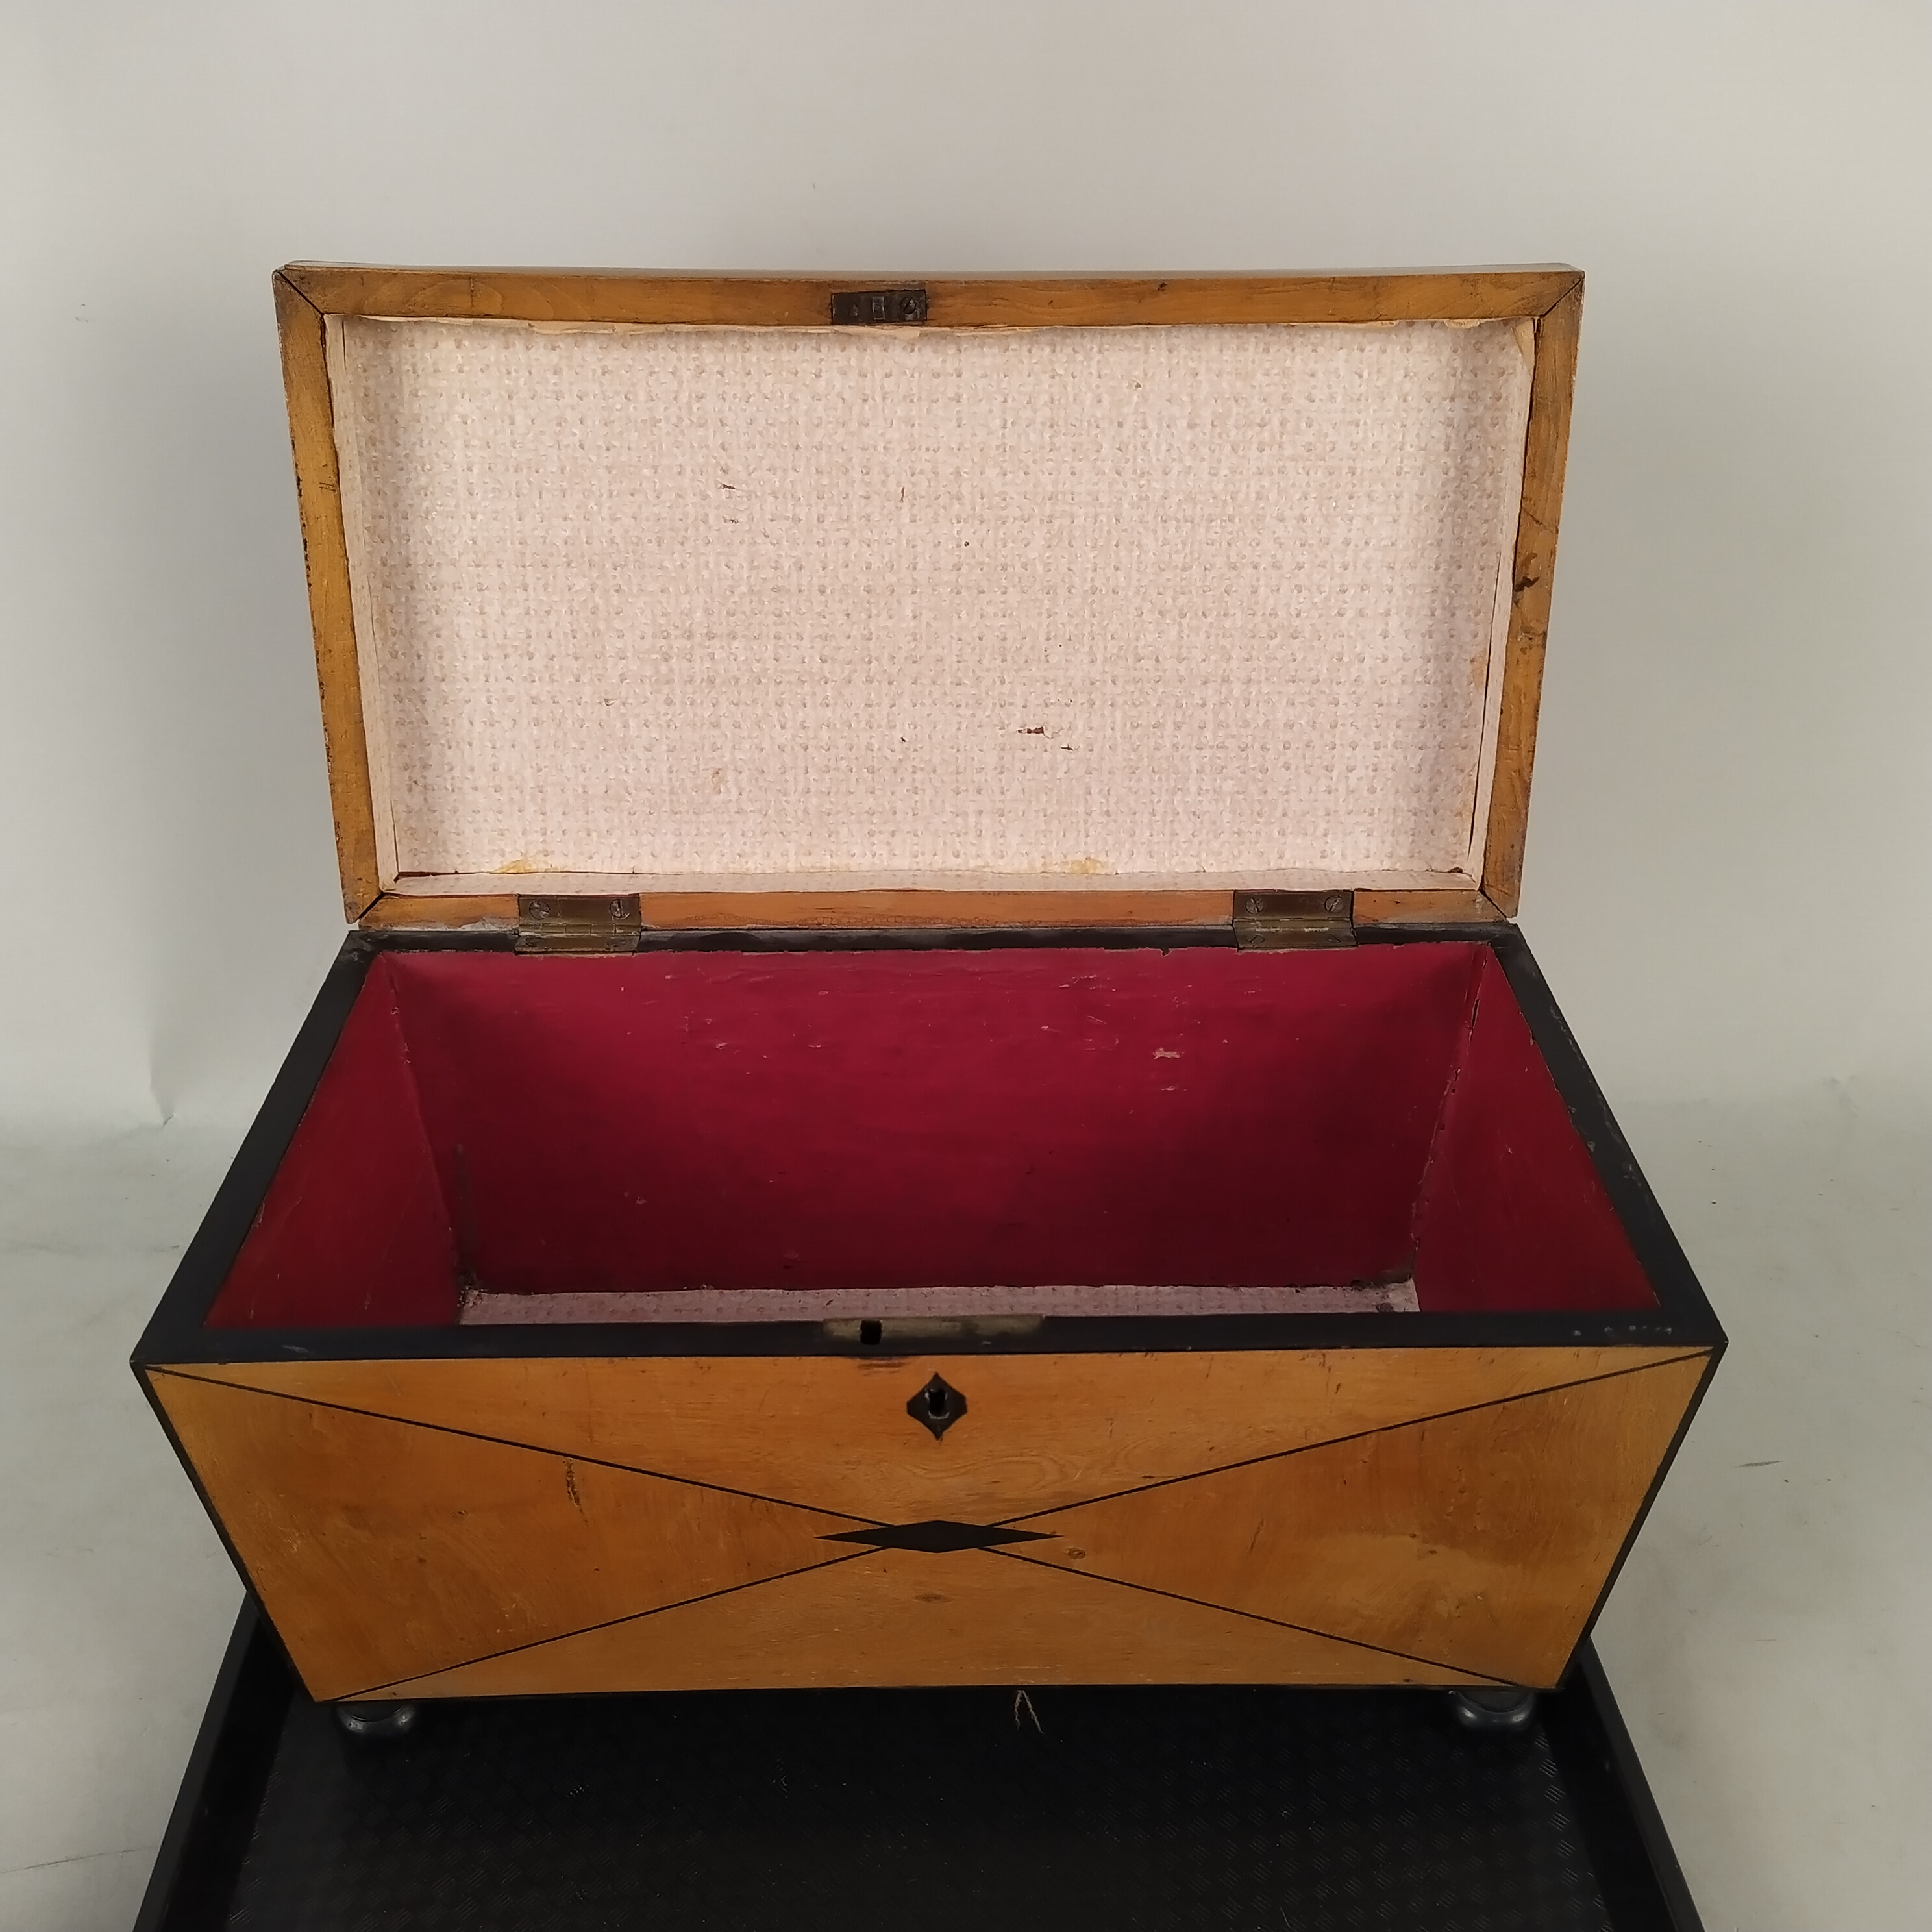 An antique satinwood tea caddy with void interior plus a Victorian brass chestnut roaster and ladle - Image 2 of 3